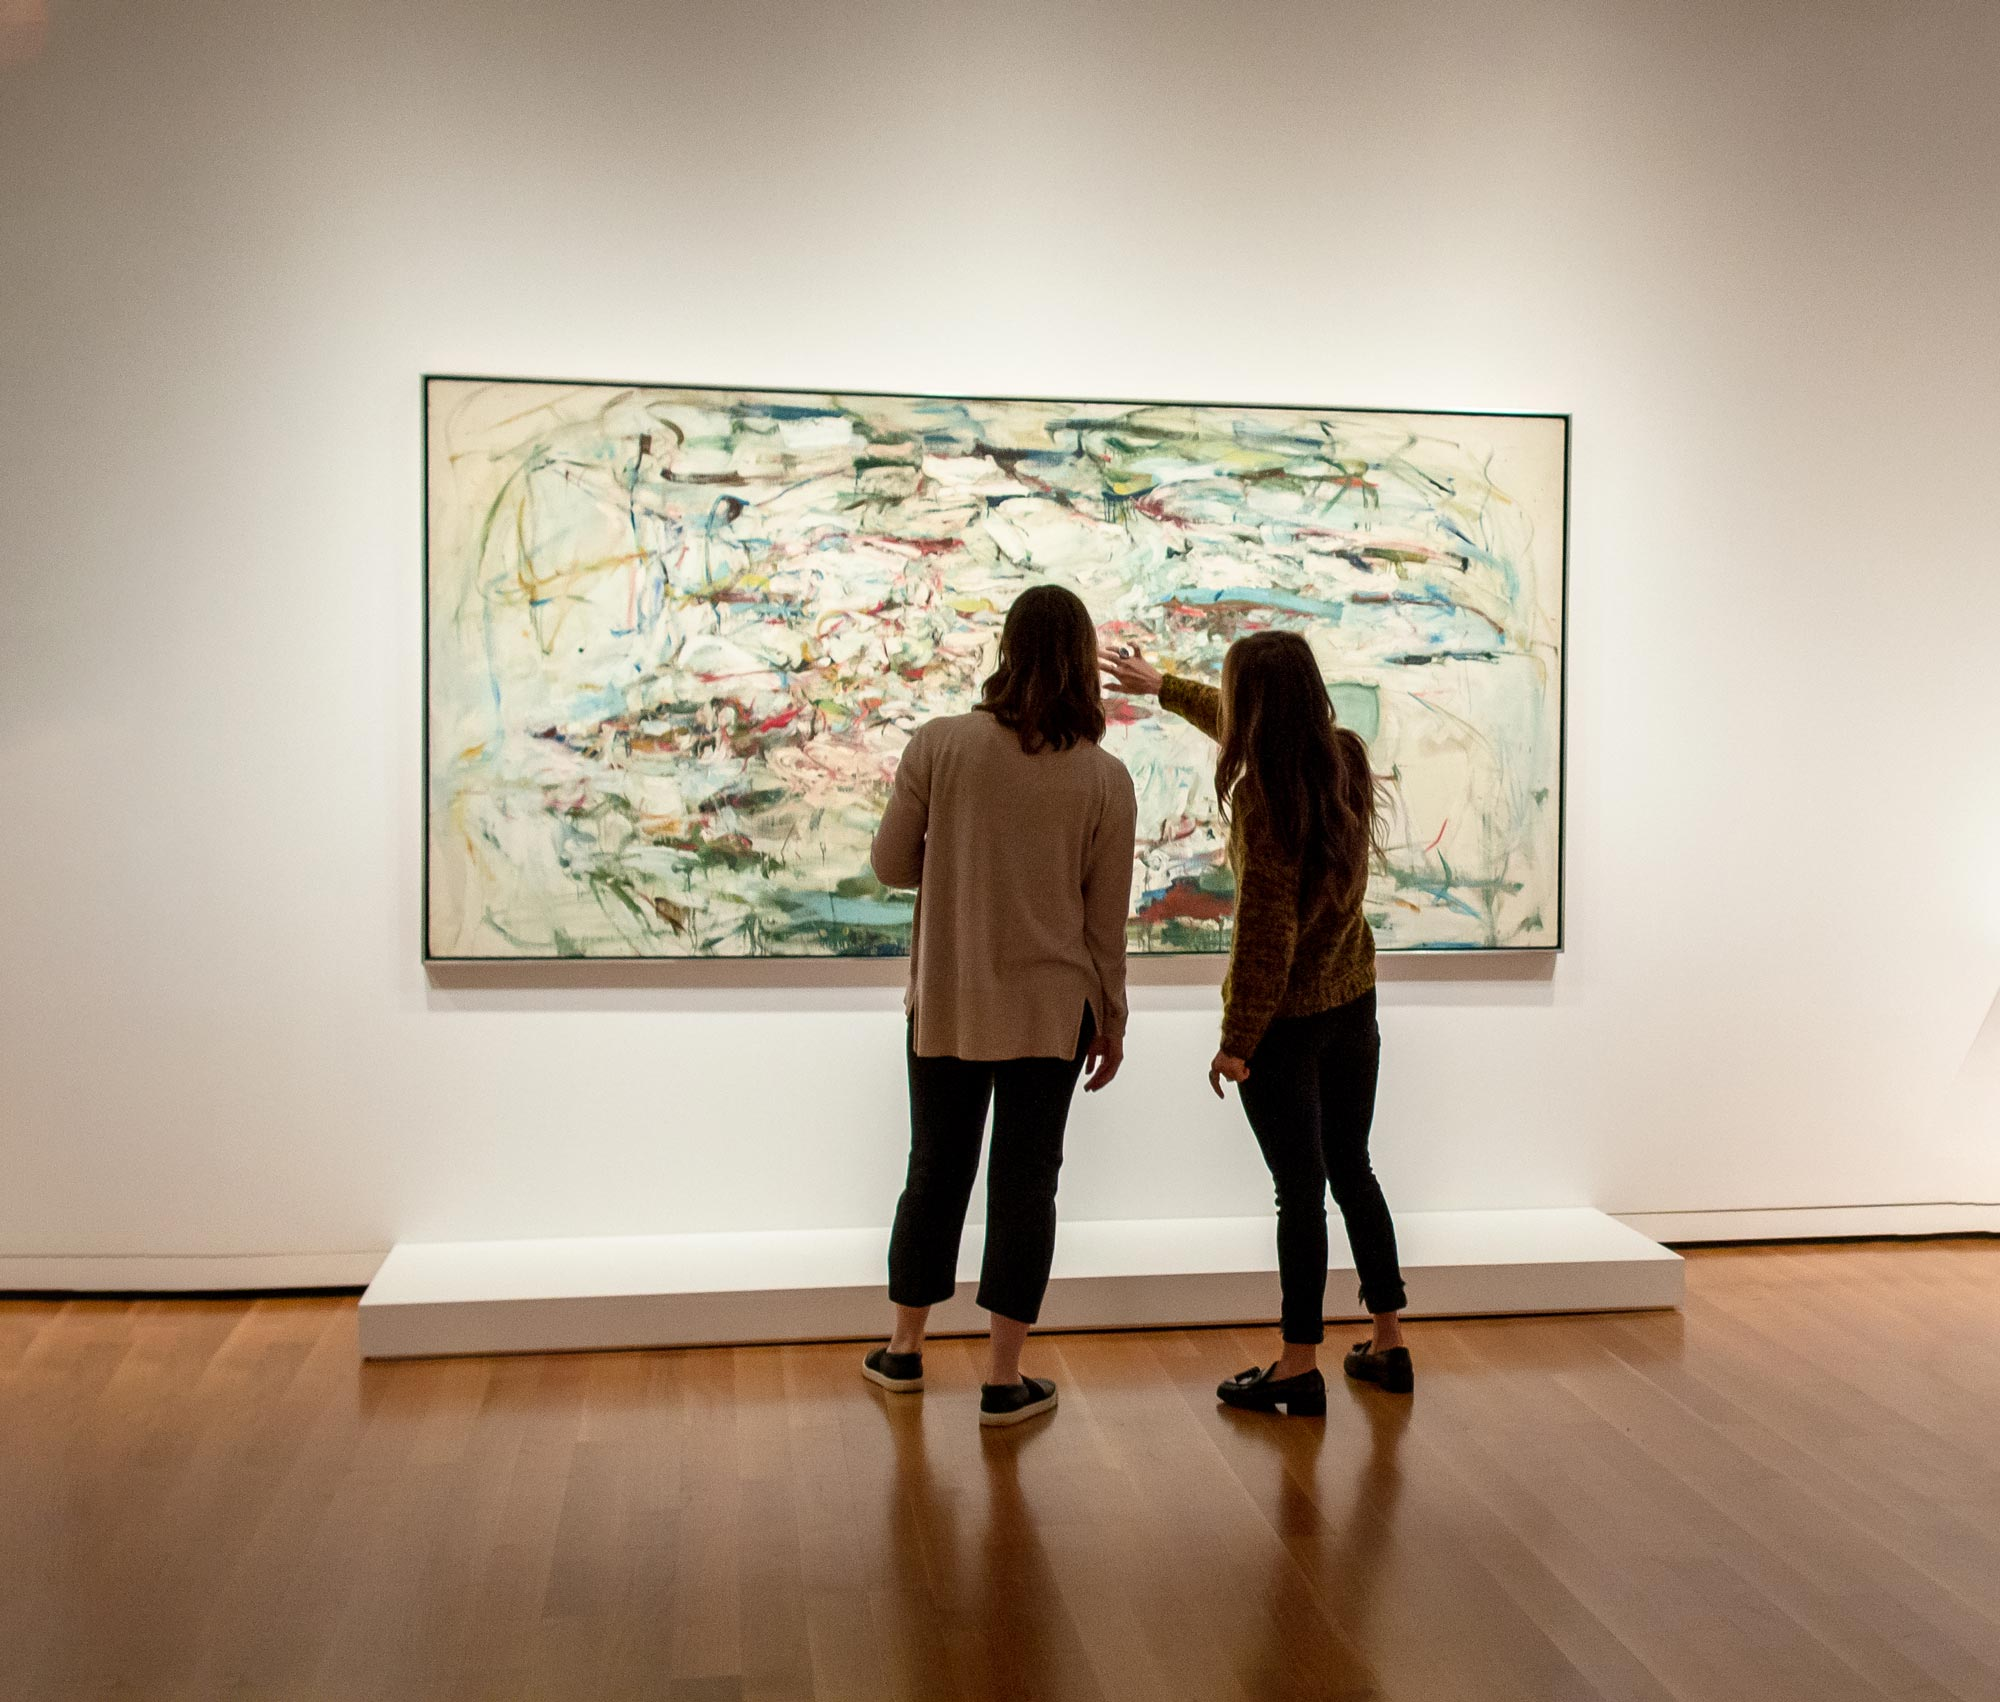 Two individuals stand before a large, abstract painting hanging on a white wall and above warm, wooden floors. One of the two points toward the center, which crackles with color and motion and mood.